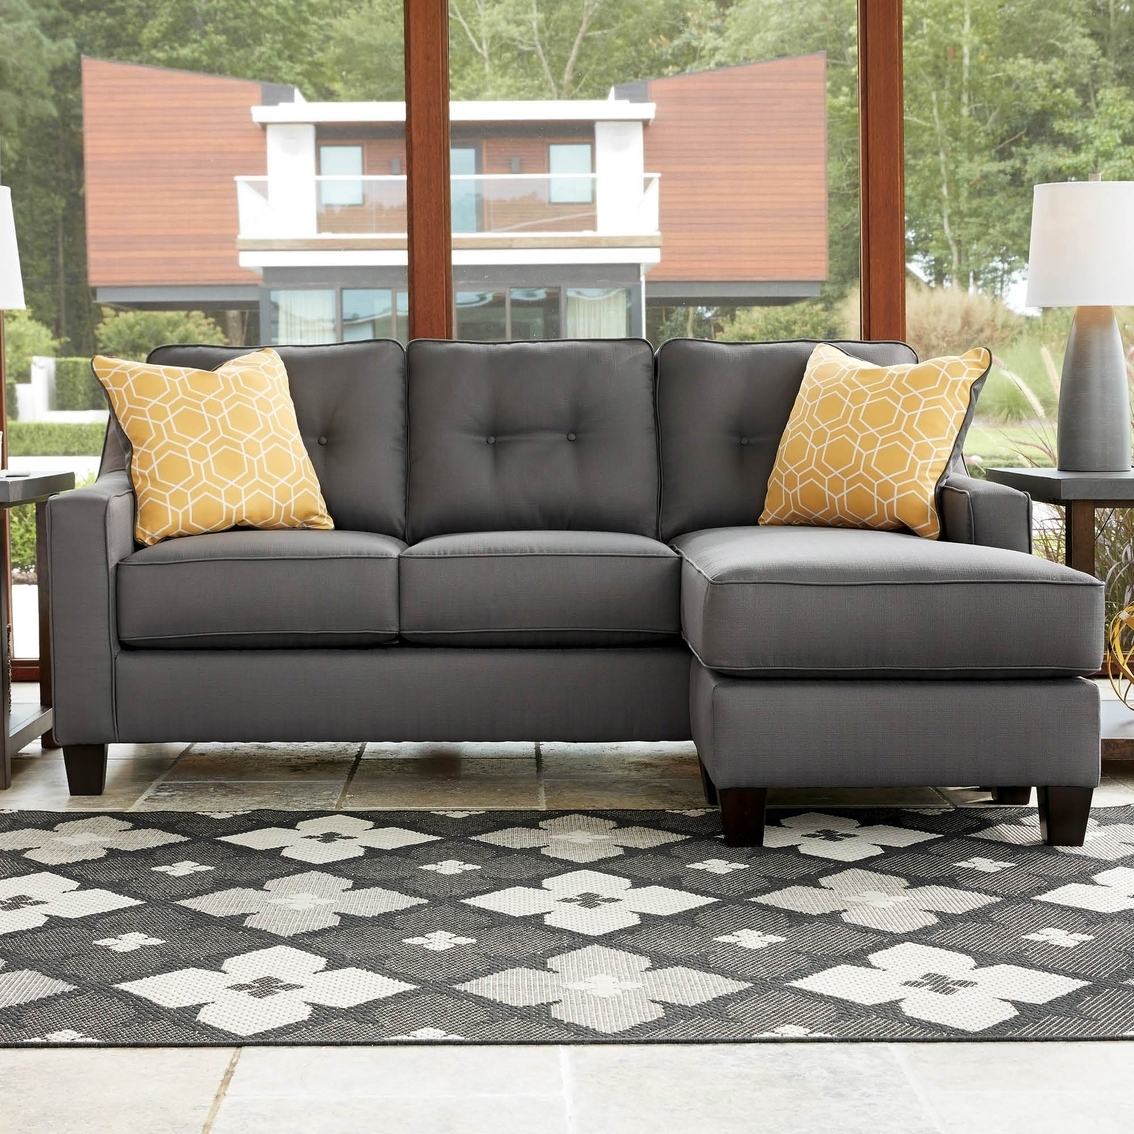 Favorite Chaise Couches Regarding Benchcraft Aldie Nuvella Sofa Chaise (View 5 of 15)